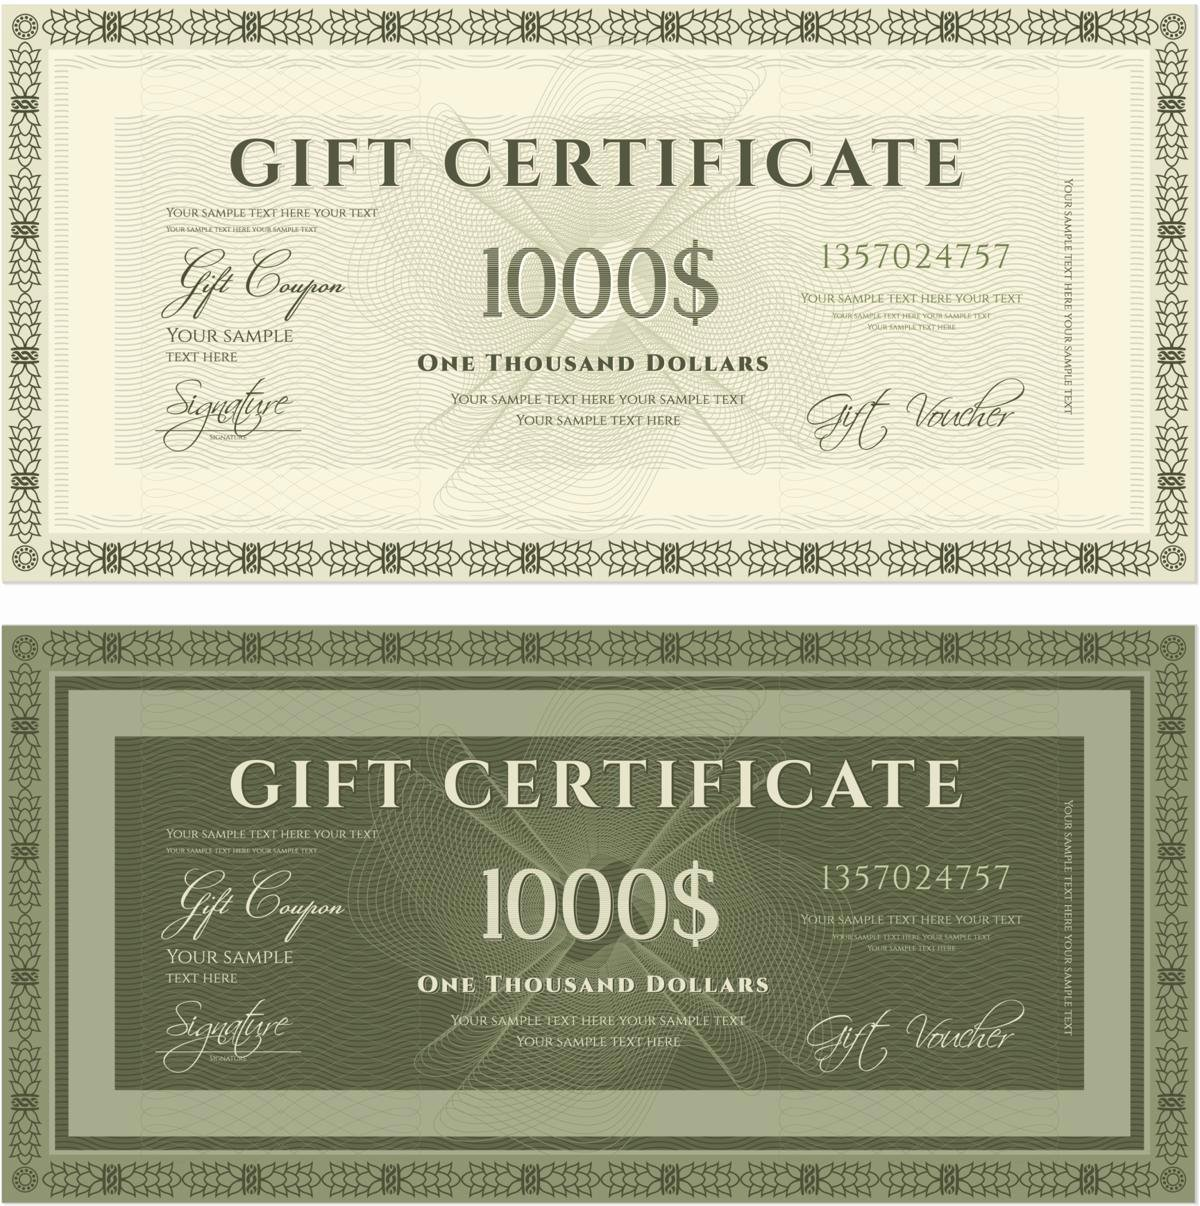 Gift Certificate Wording Beautiful Sample Wordings for Gift Certificates You Ll Want to Copy now